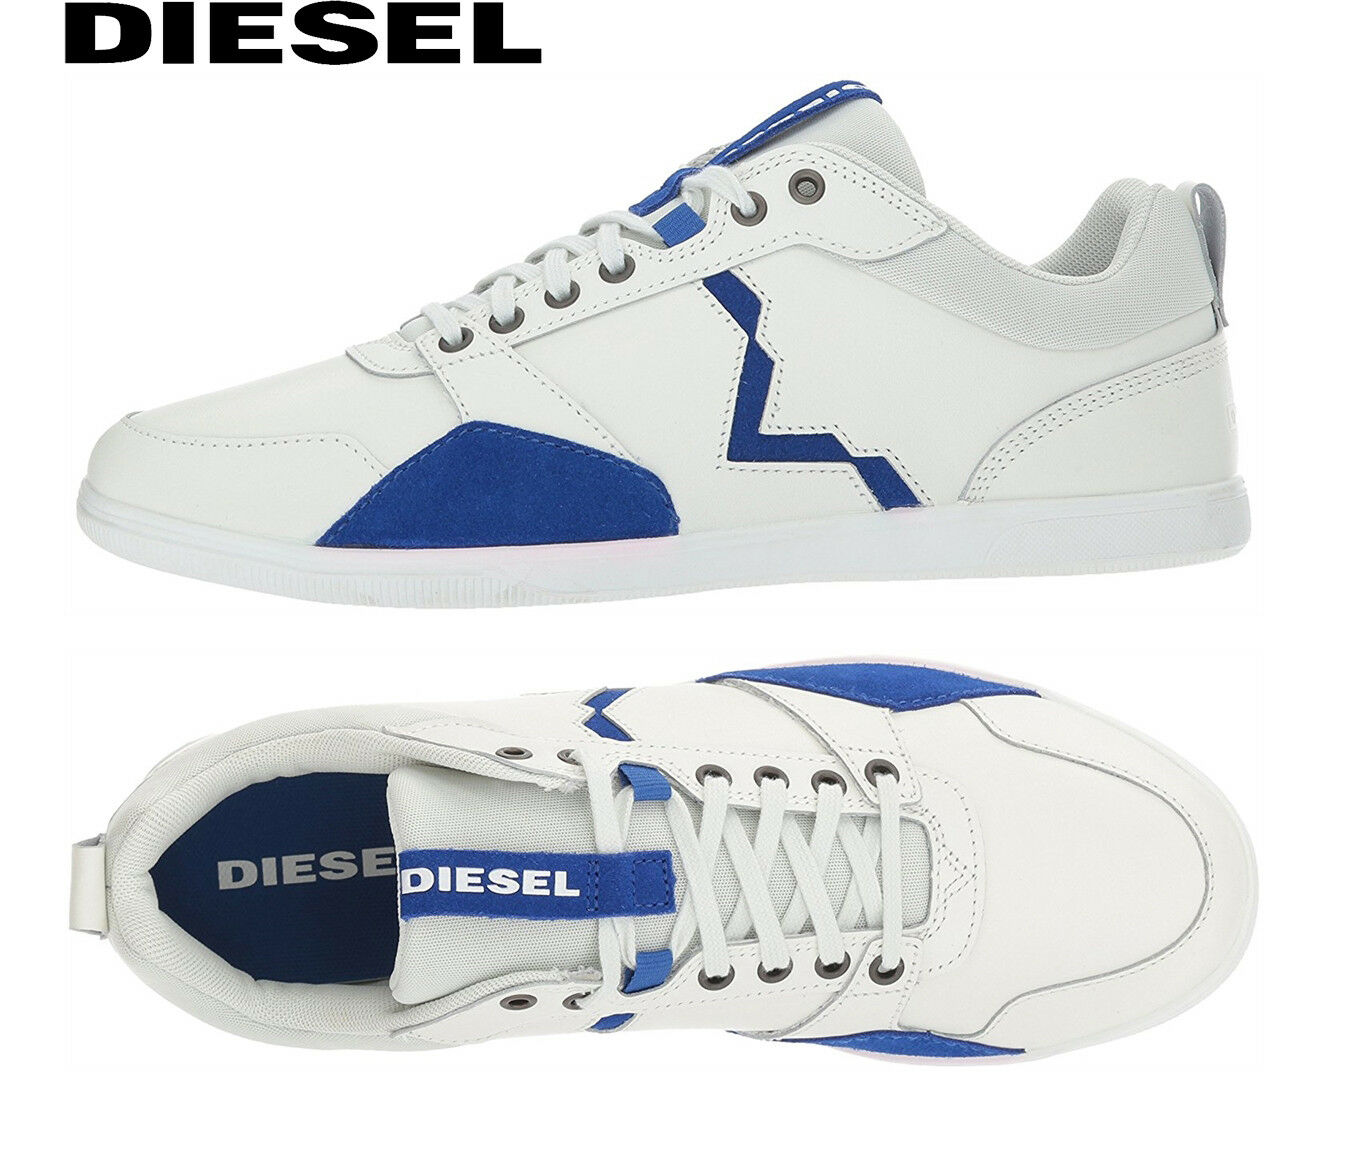 Diesel Shoes White Happy Hours S-Tage Sneakers Mens Y01497 P1396 H6406 NEW